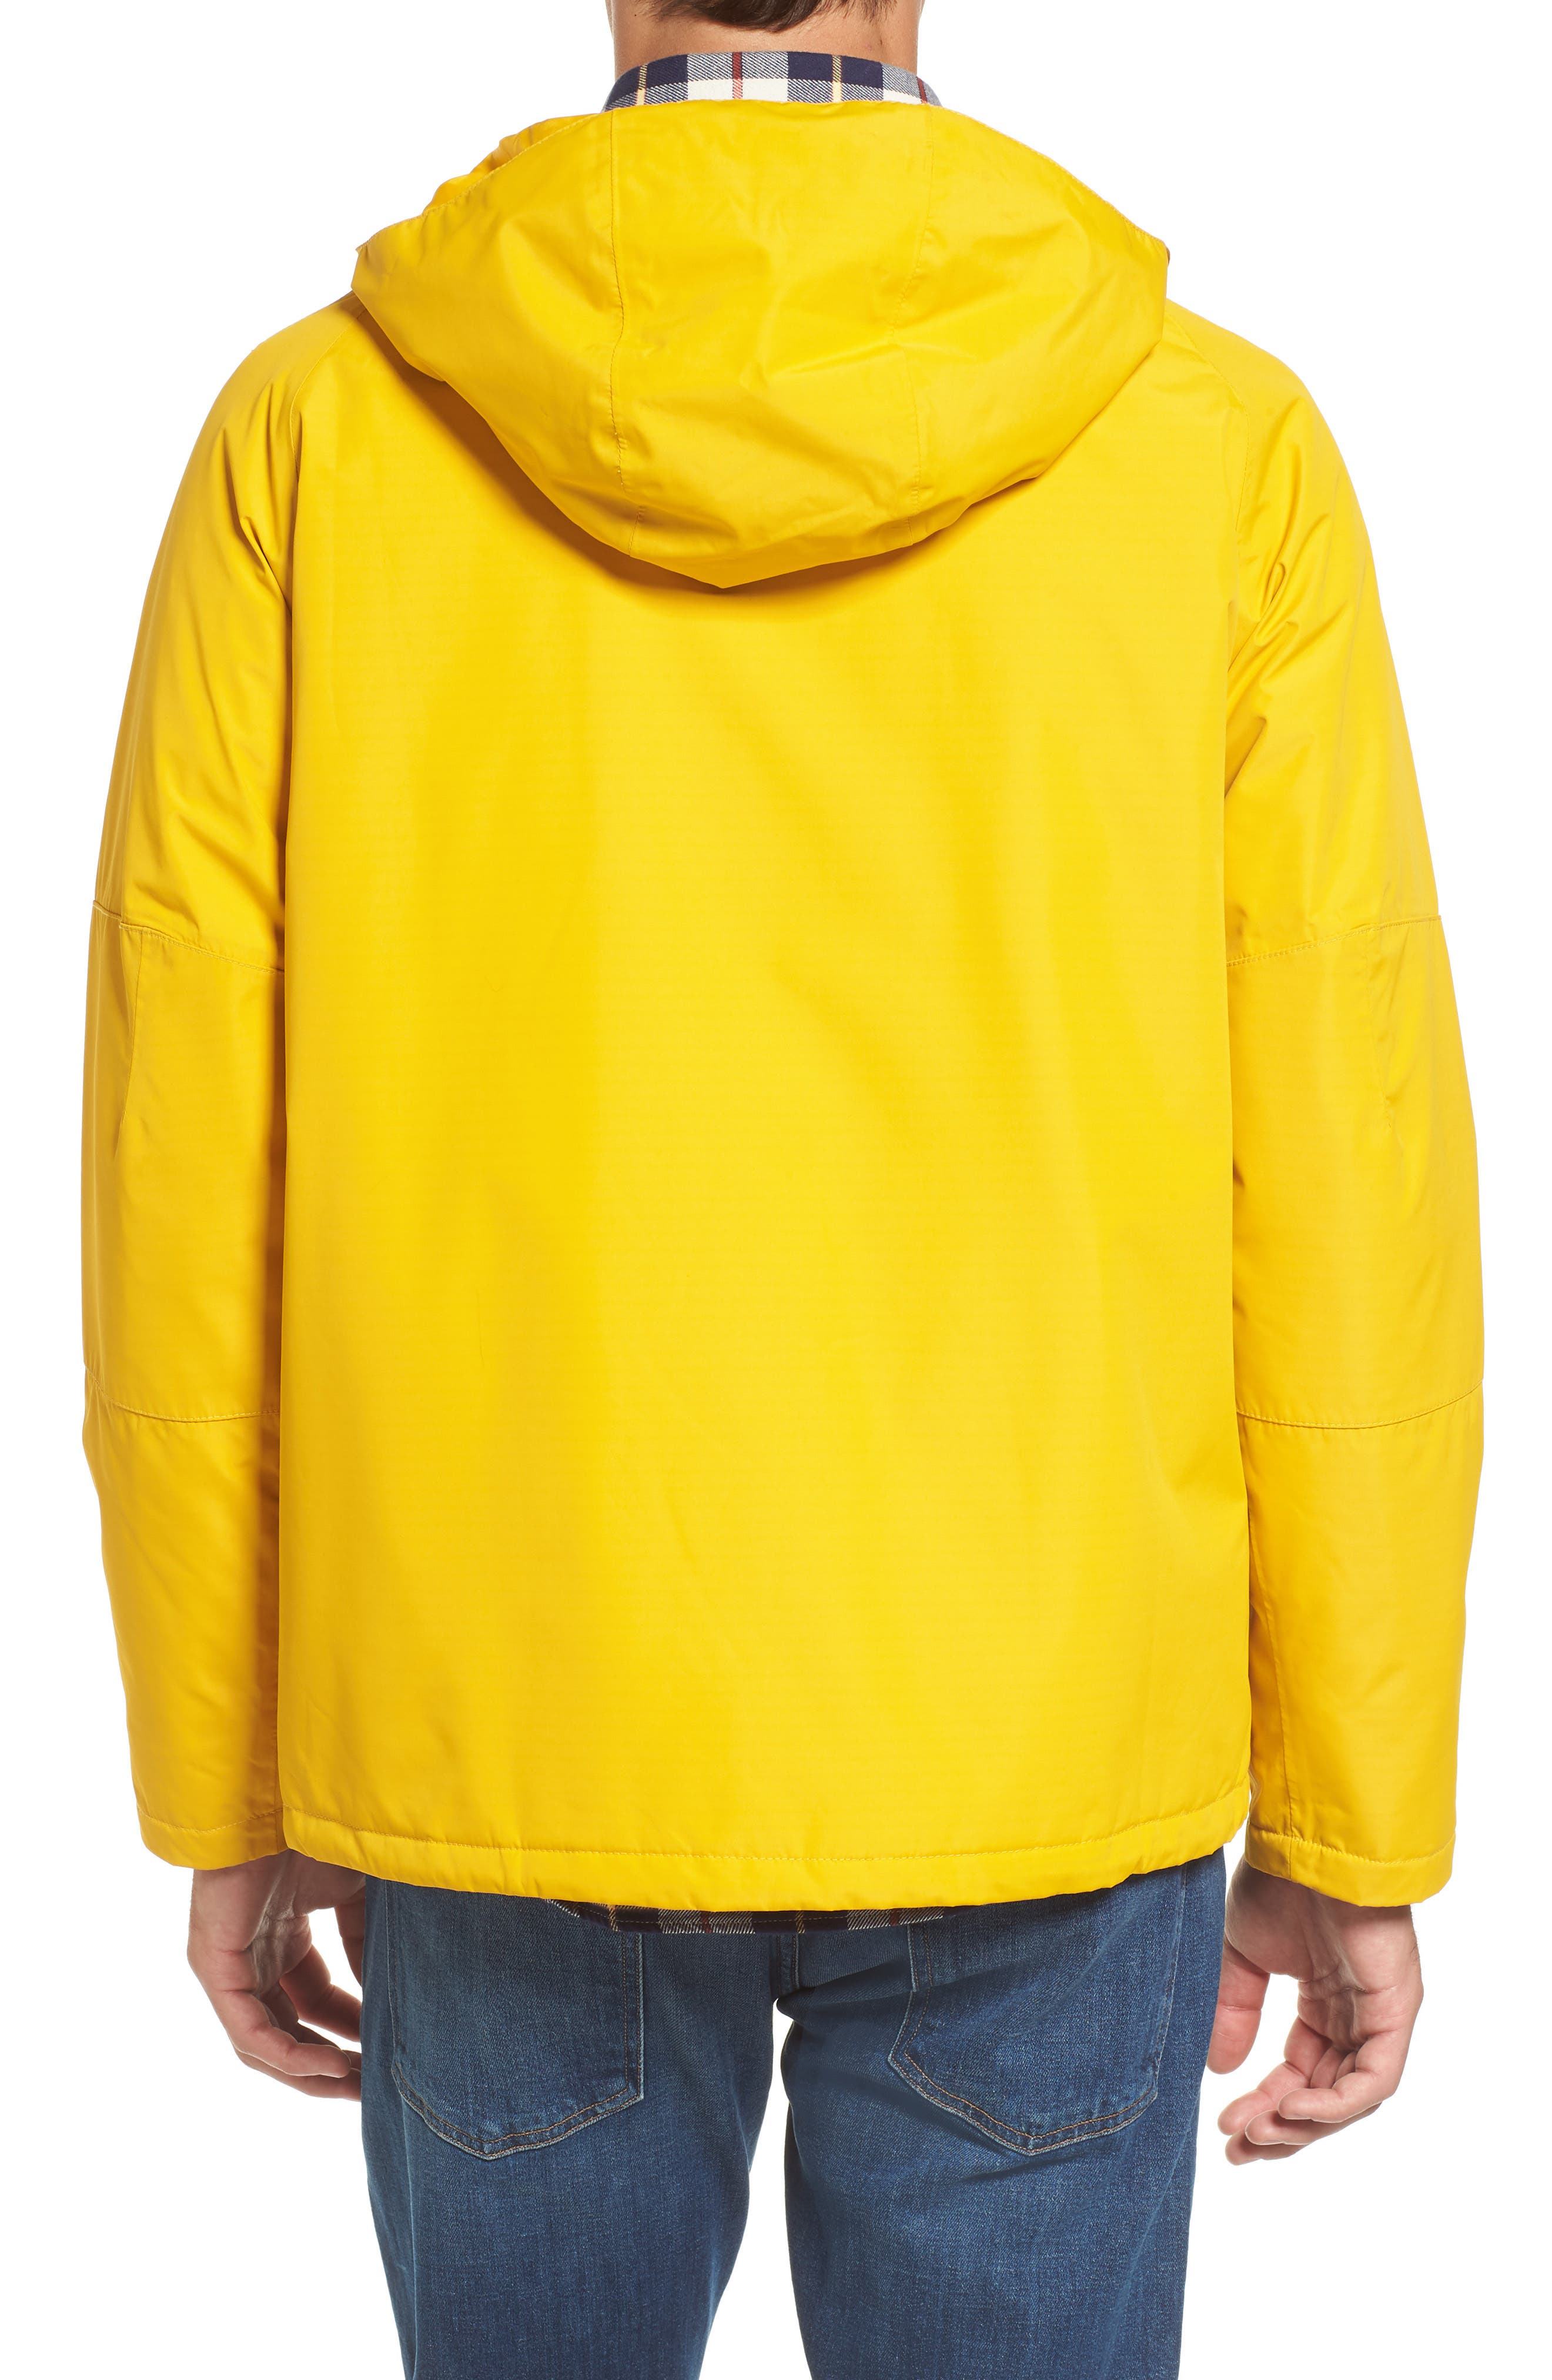 Rydal Waterproof Hooded Jacket,                             Alternate thumbnail 2, color,                             Canary Yellow